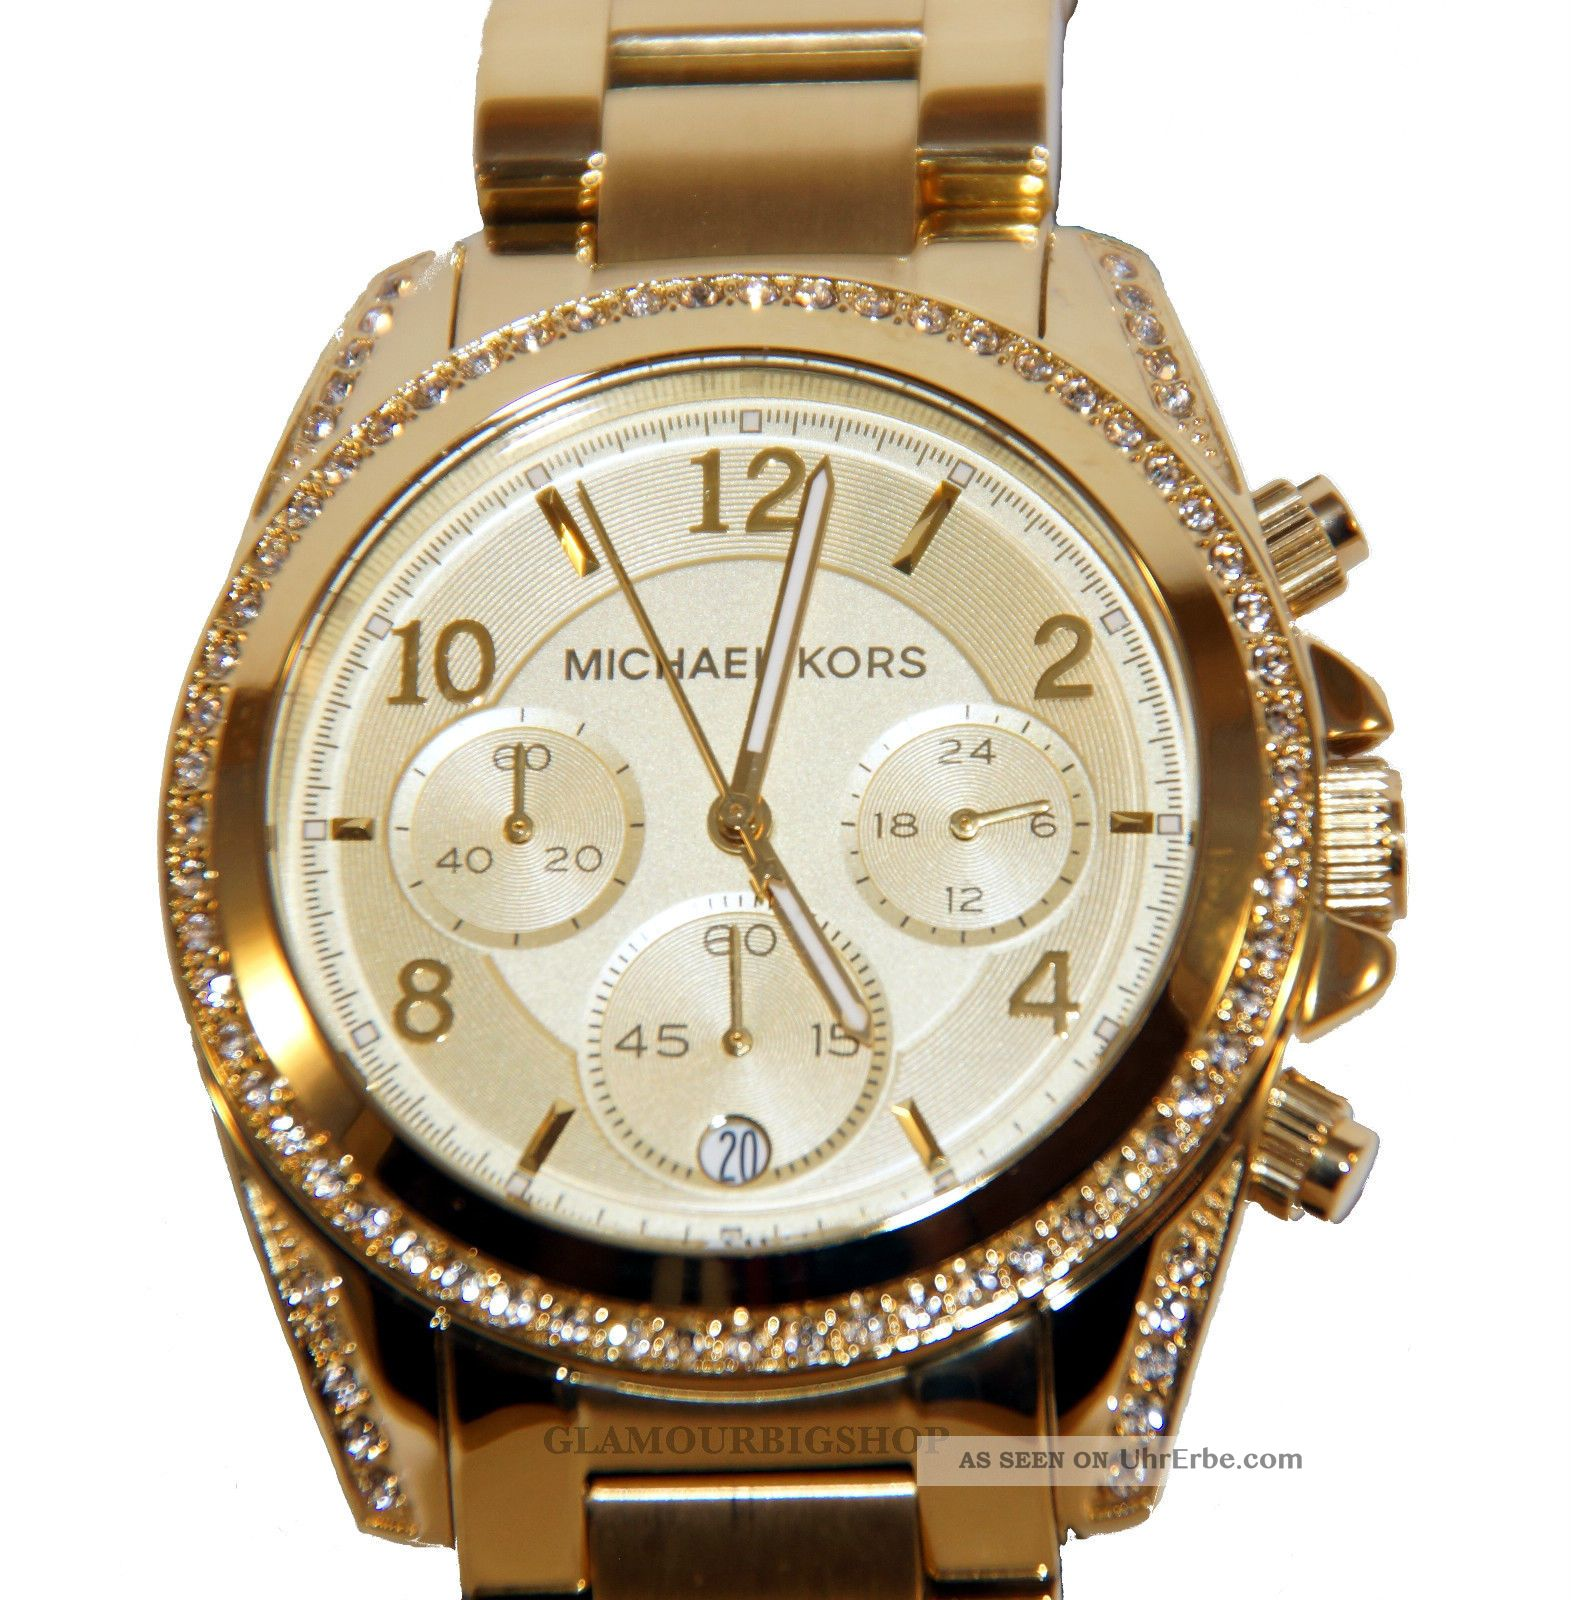 neu michael kors goldene uhr mit steinen schmuck website. Black Bedroom Furniture Sets. Home Design Ideas